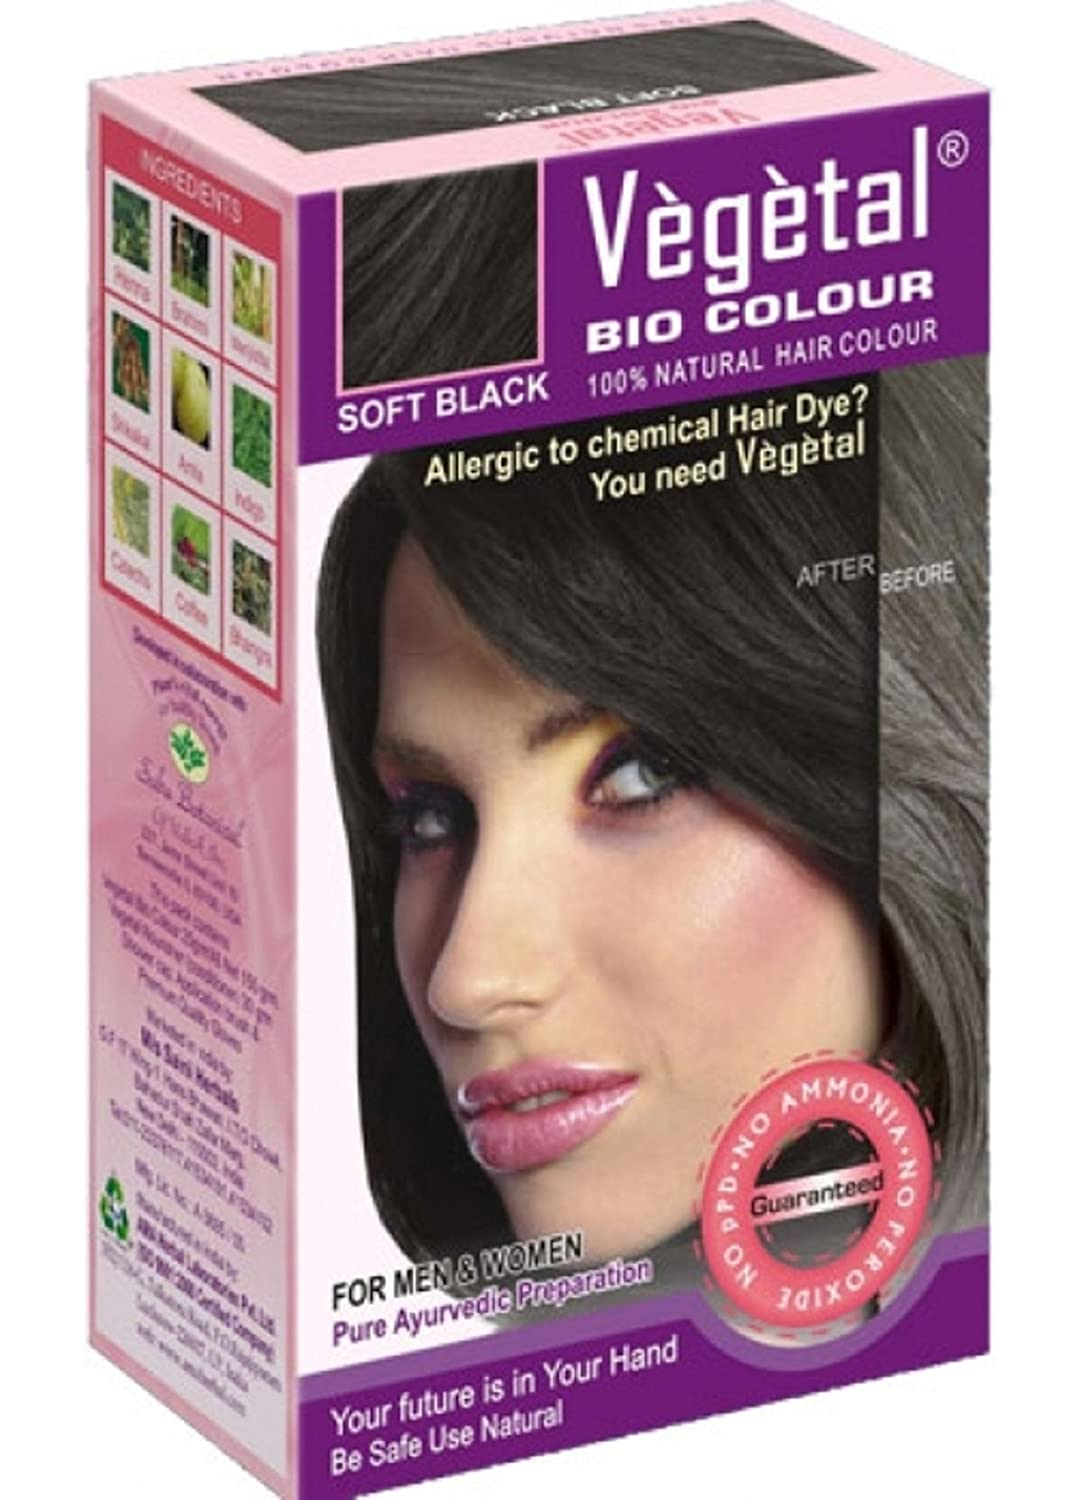 Vegetal Hair Dye – What Is It And Why To Use It